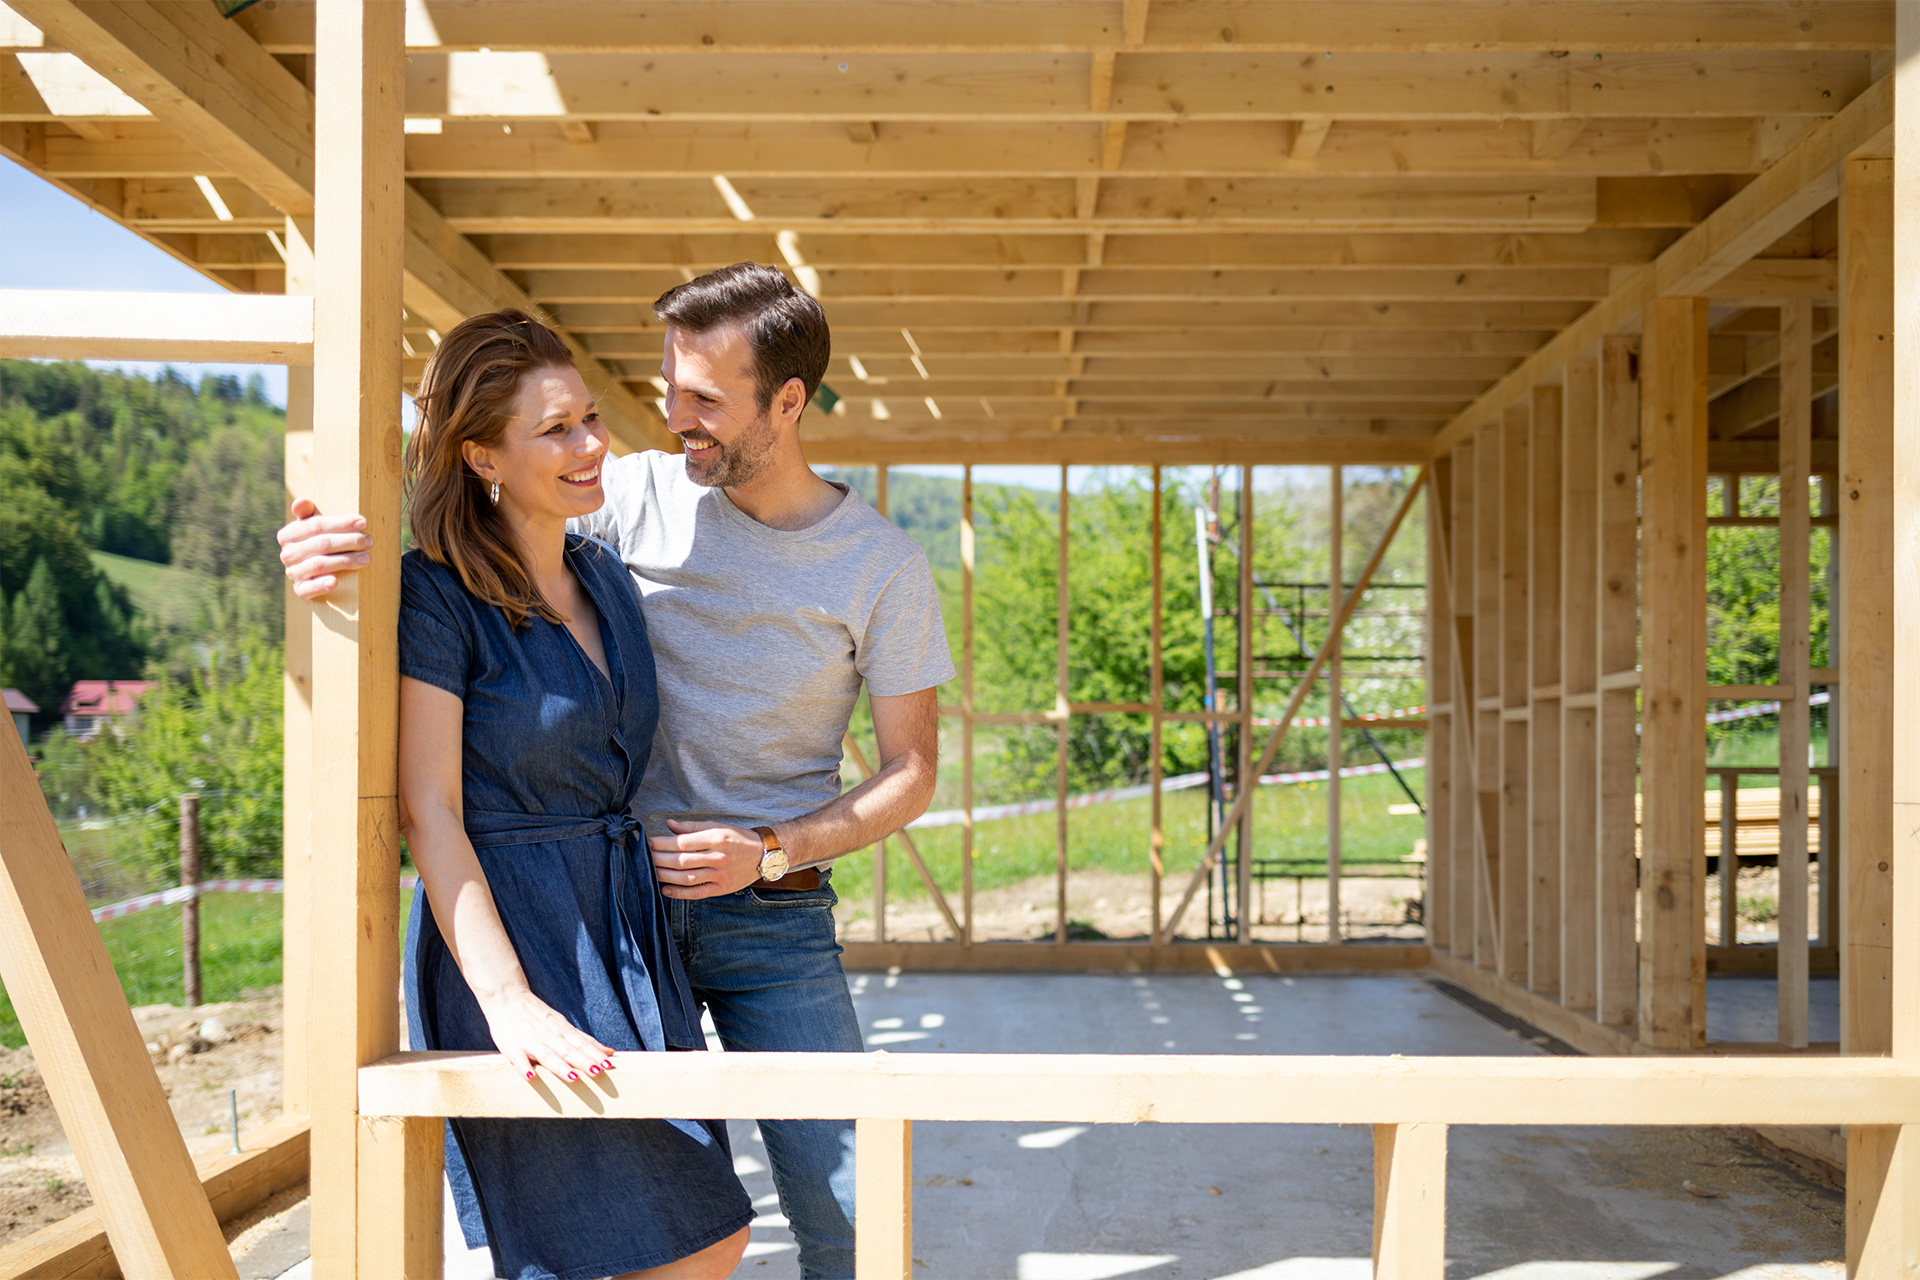 House and Land for Sale - woman and man on wooden support